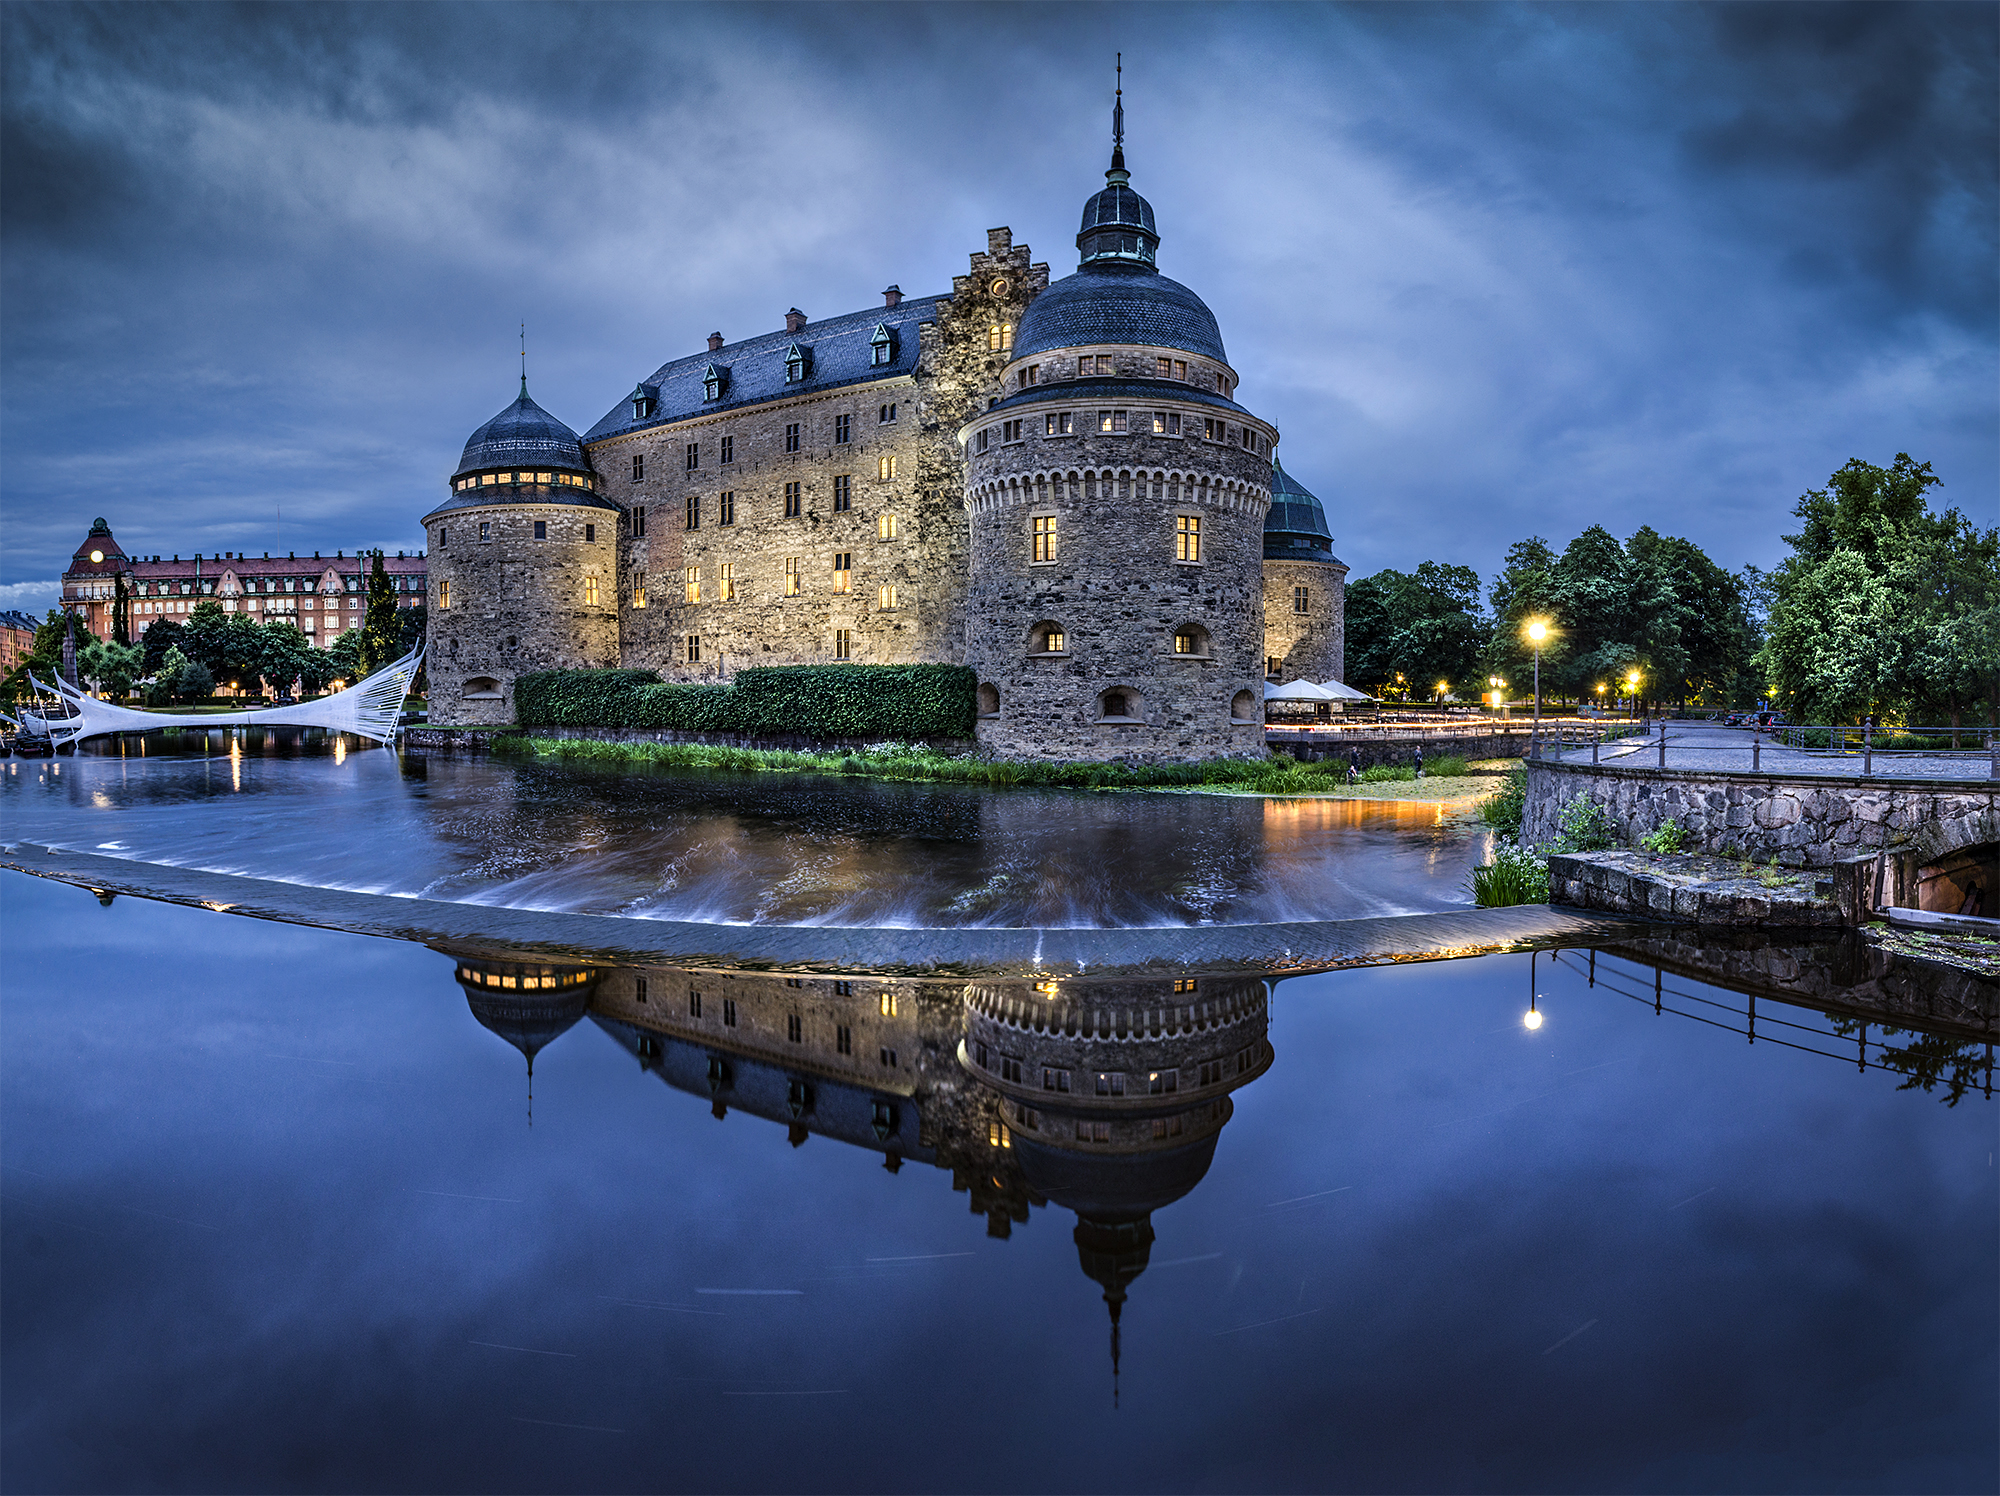 Made   Orebro Castle Castle Sweden Reflection Night Scenic Wallpaper 2000x1496